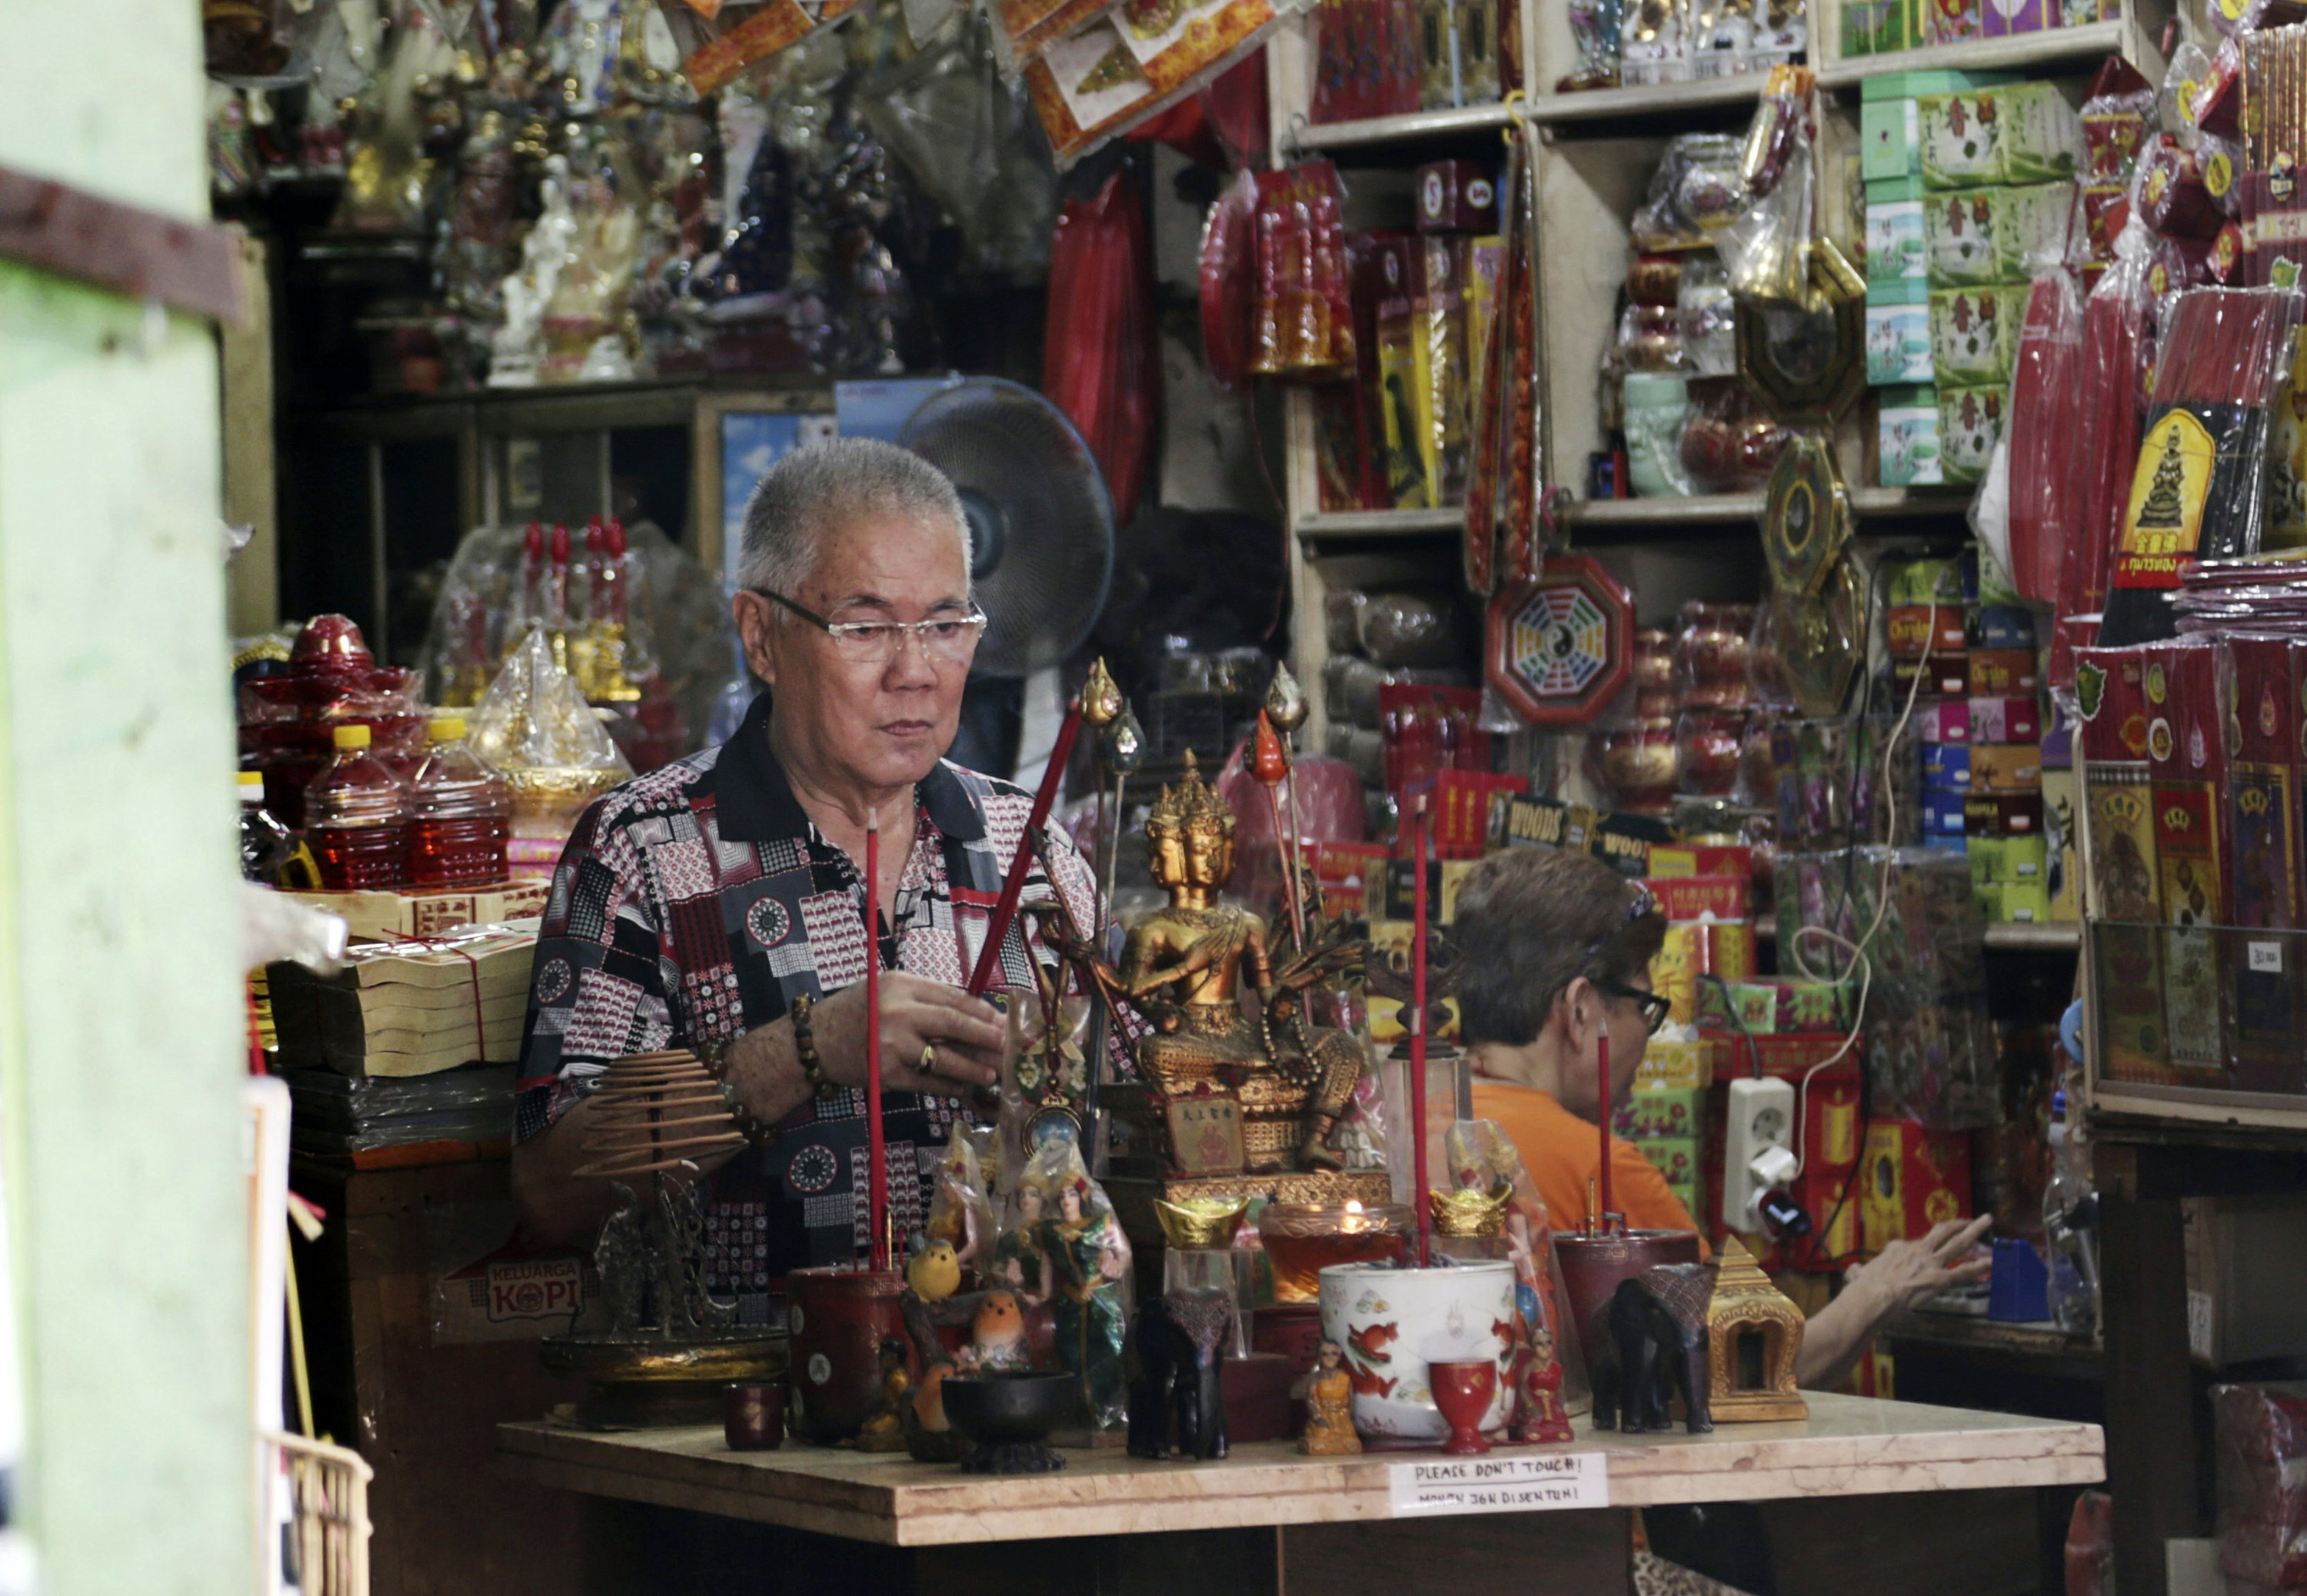 Indonesia protests awaken fears for minority Chinese